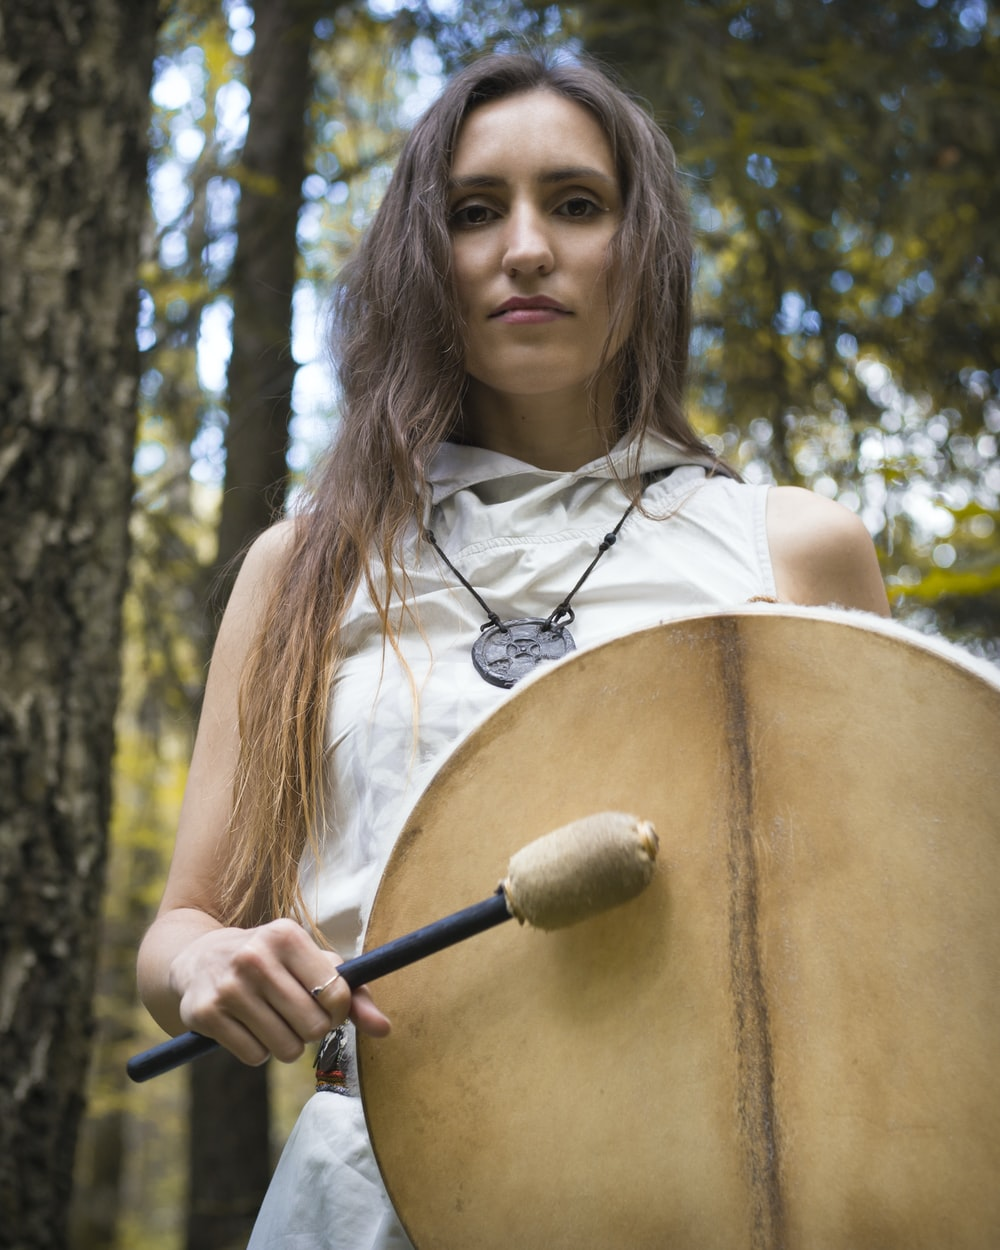 woman playing drum instrument